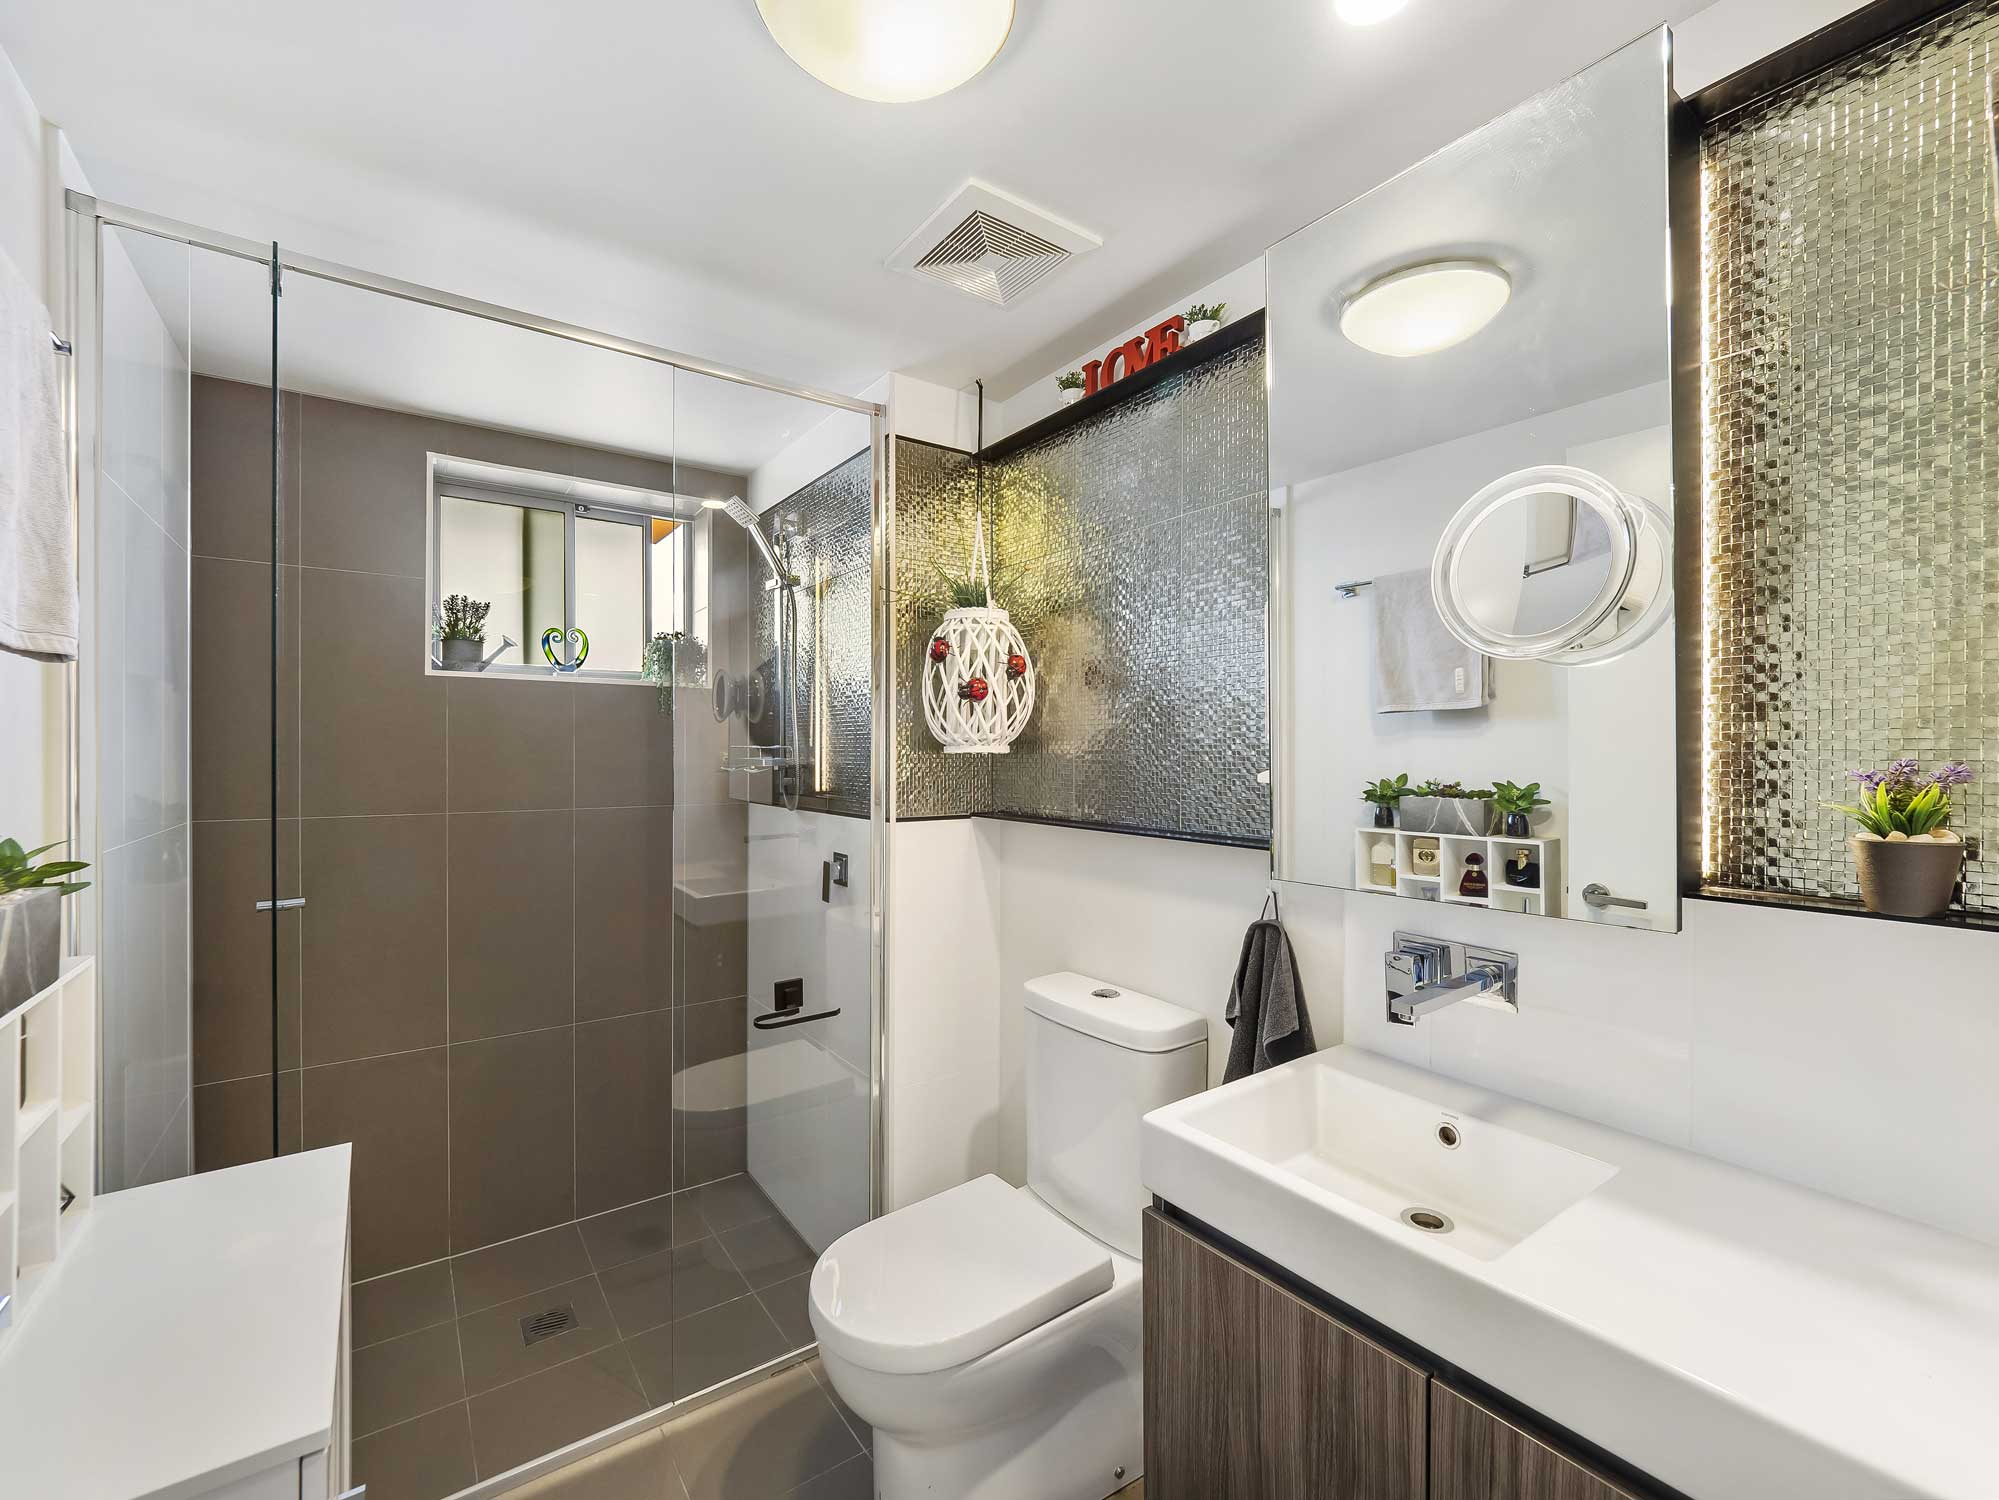 Real estate photography of Kangaroo Point apartment for sale - the bathroom